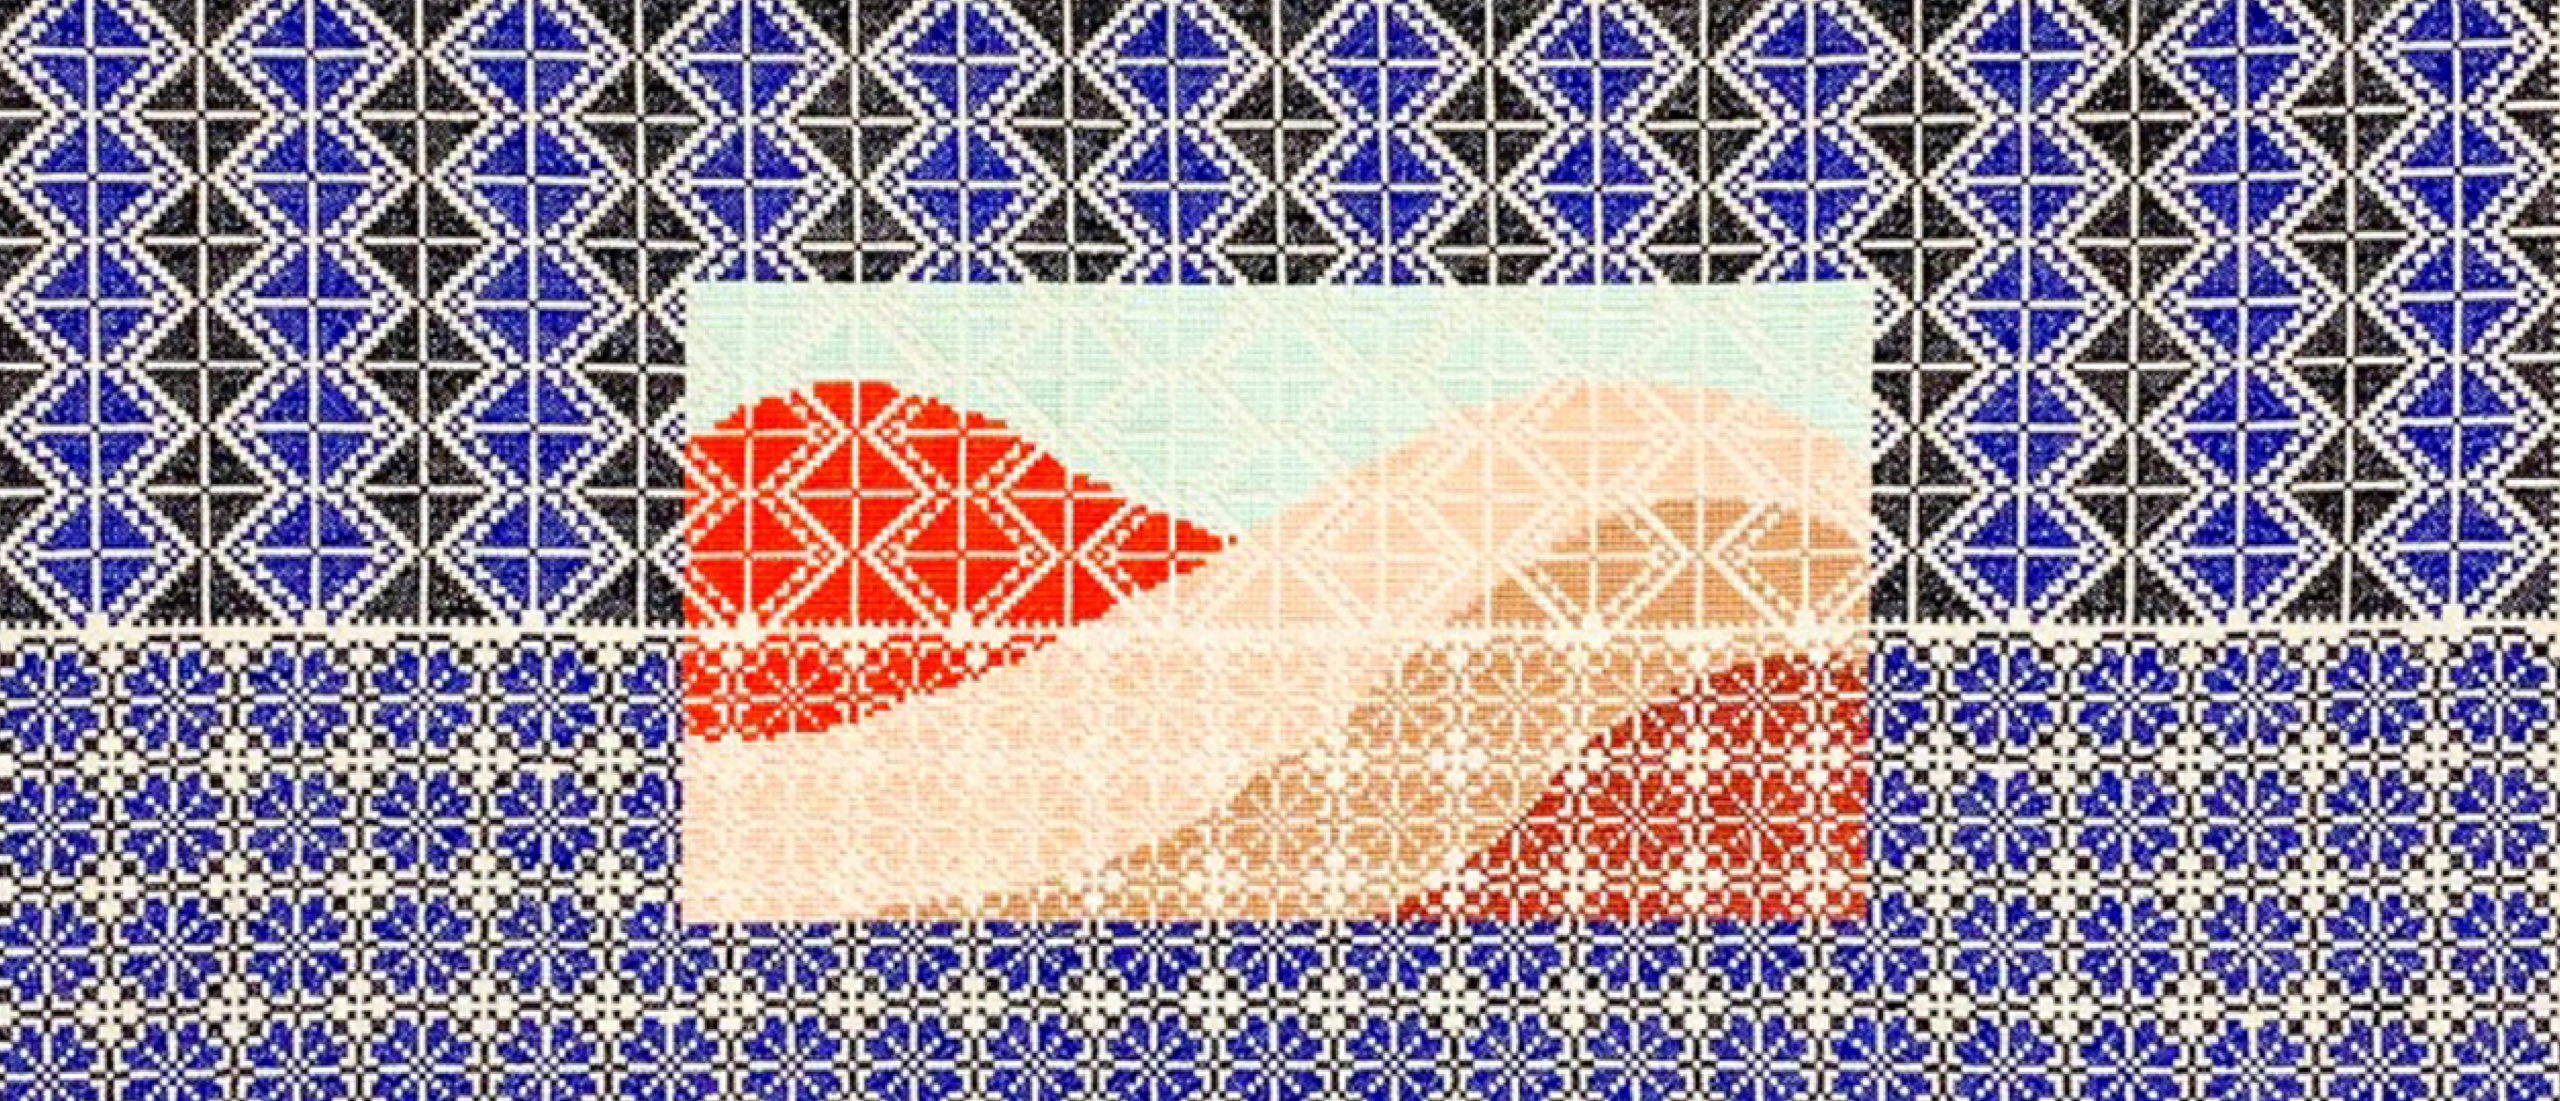 A cross stitch design in blue, black and white with an depiction of the Palestinian desert in shades of orange and taupe. A pattern designed by Jordan Nassar.